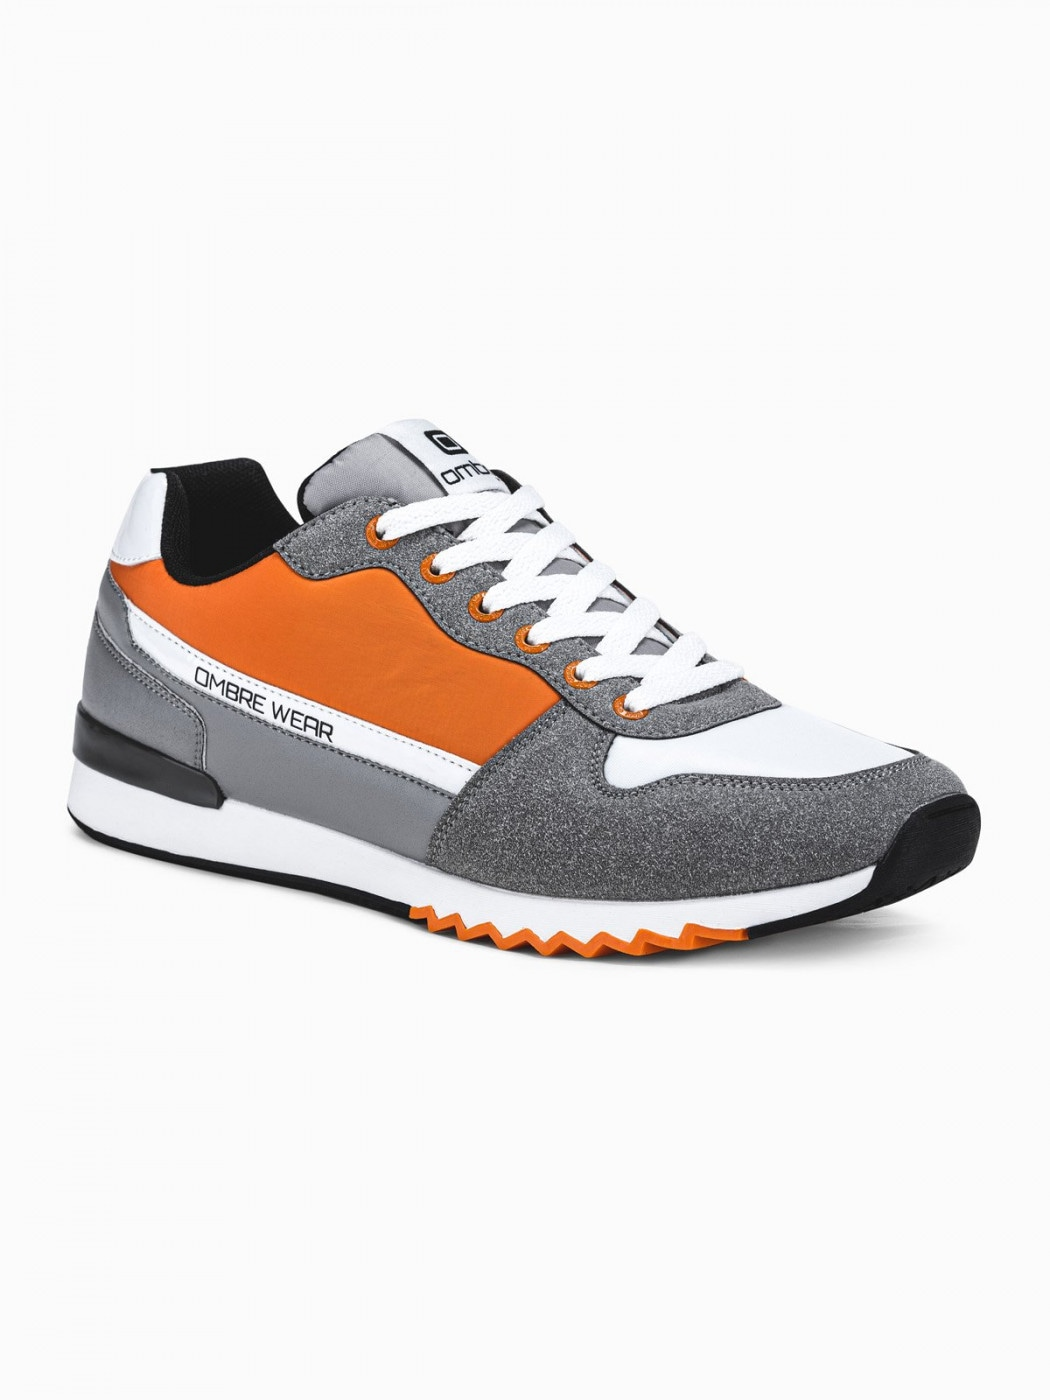 Ombre Clothing Men's casual sneakers T337